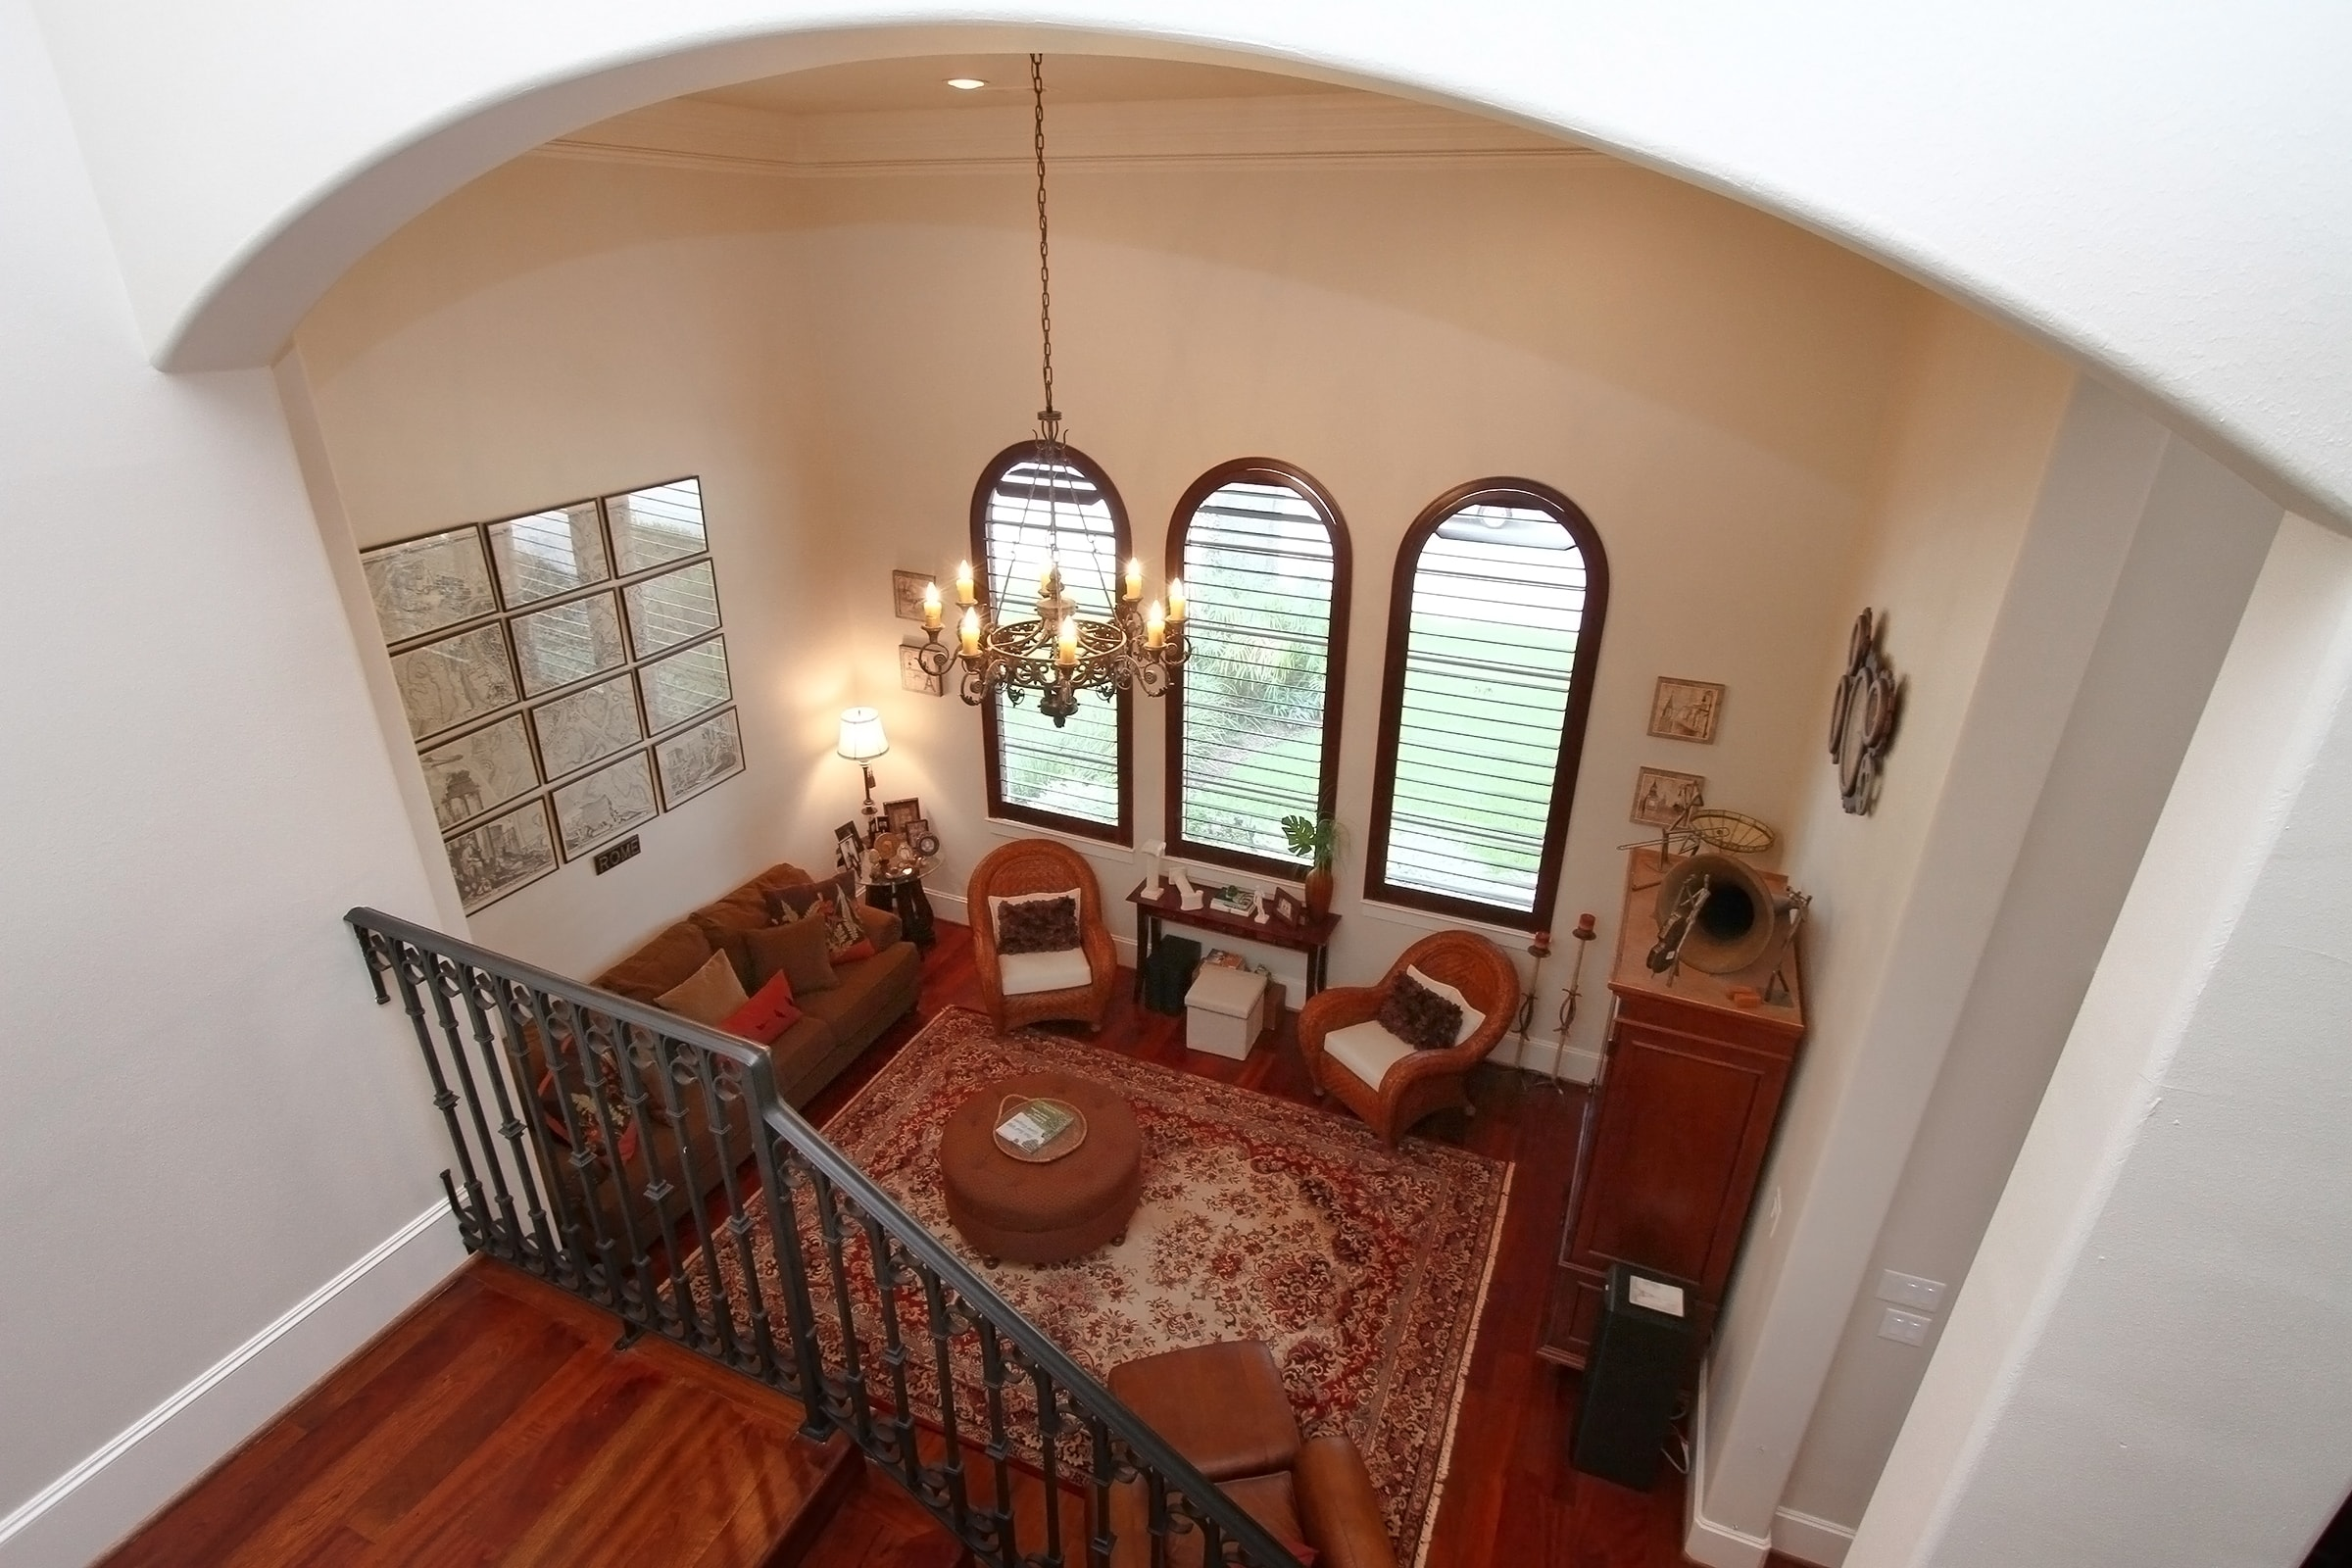 Foyer View from Staircase